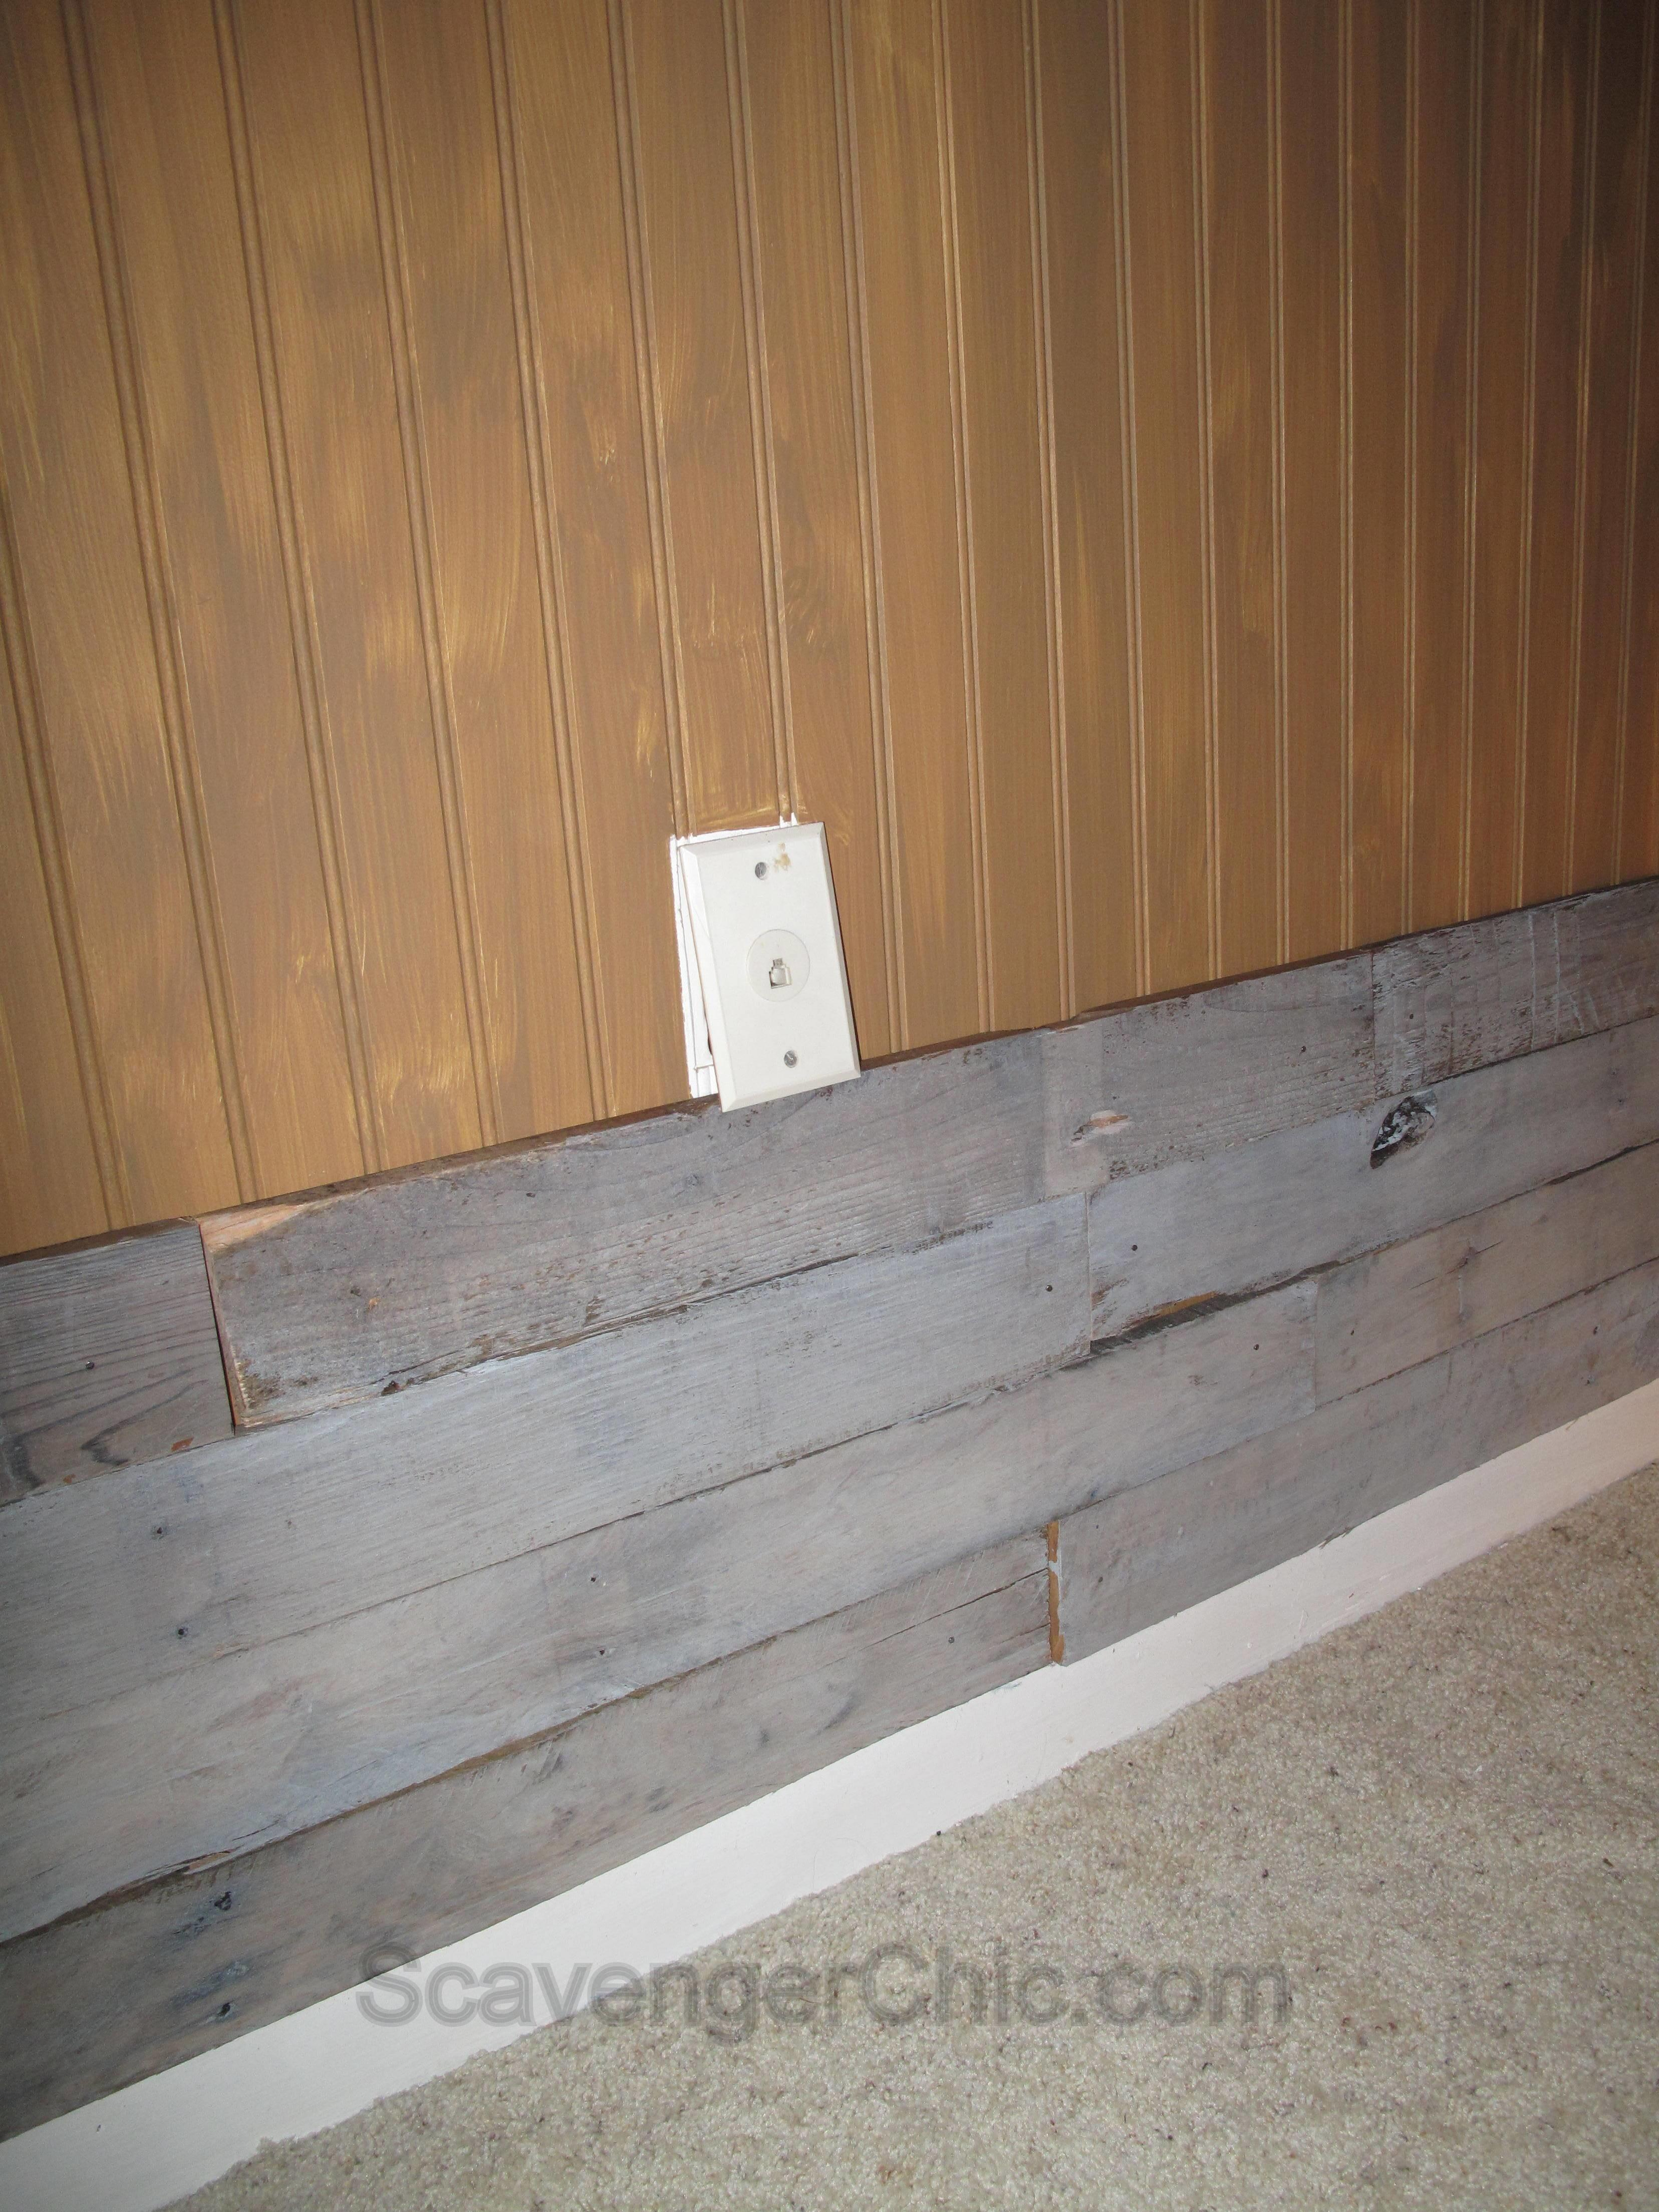 Warm Rustic Pallet Wood Wall Scavenger Chic